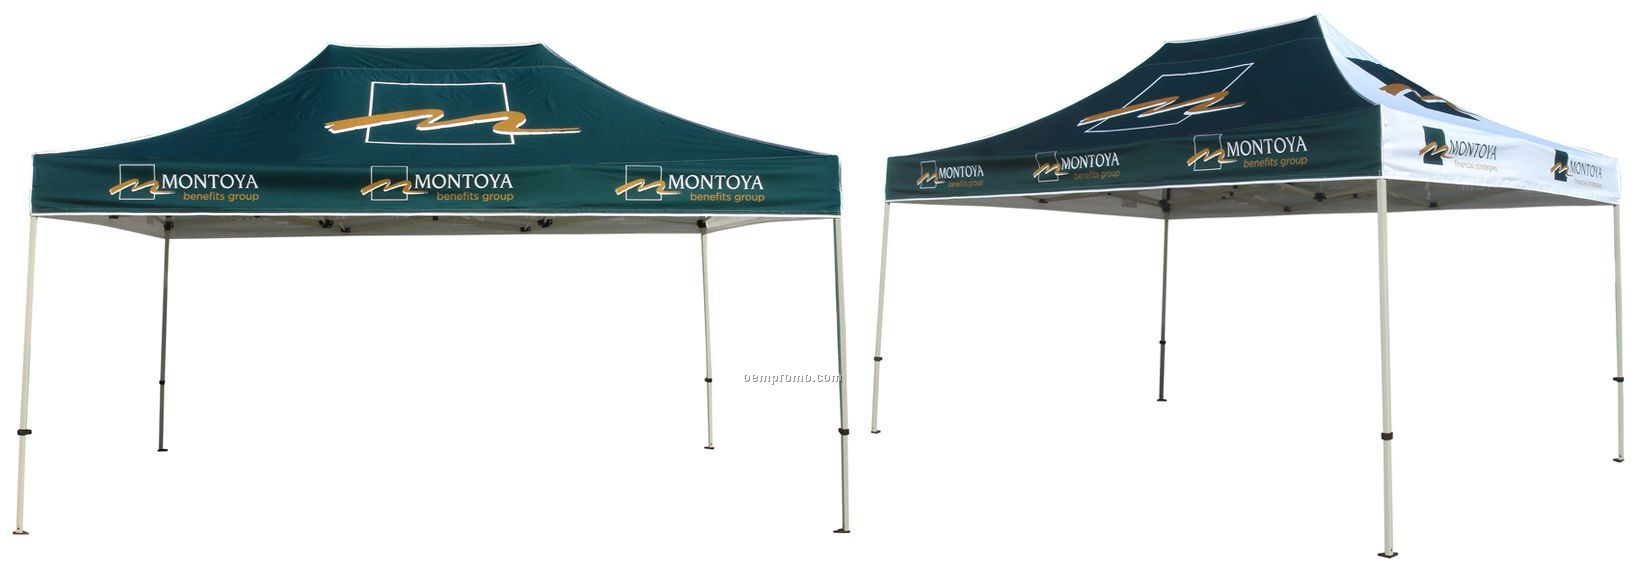 10 x 20 car canopy in Automotive Accessories - Compare Prices